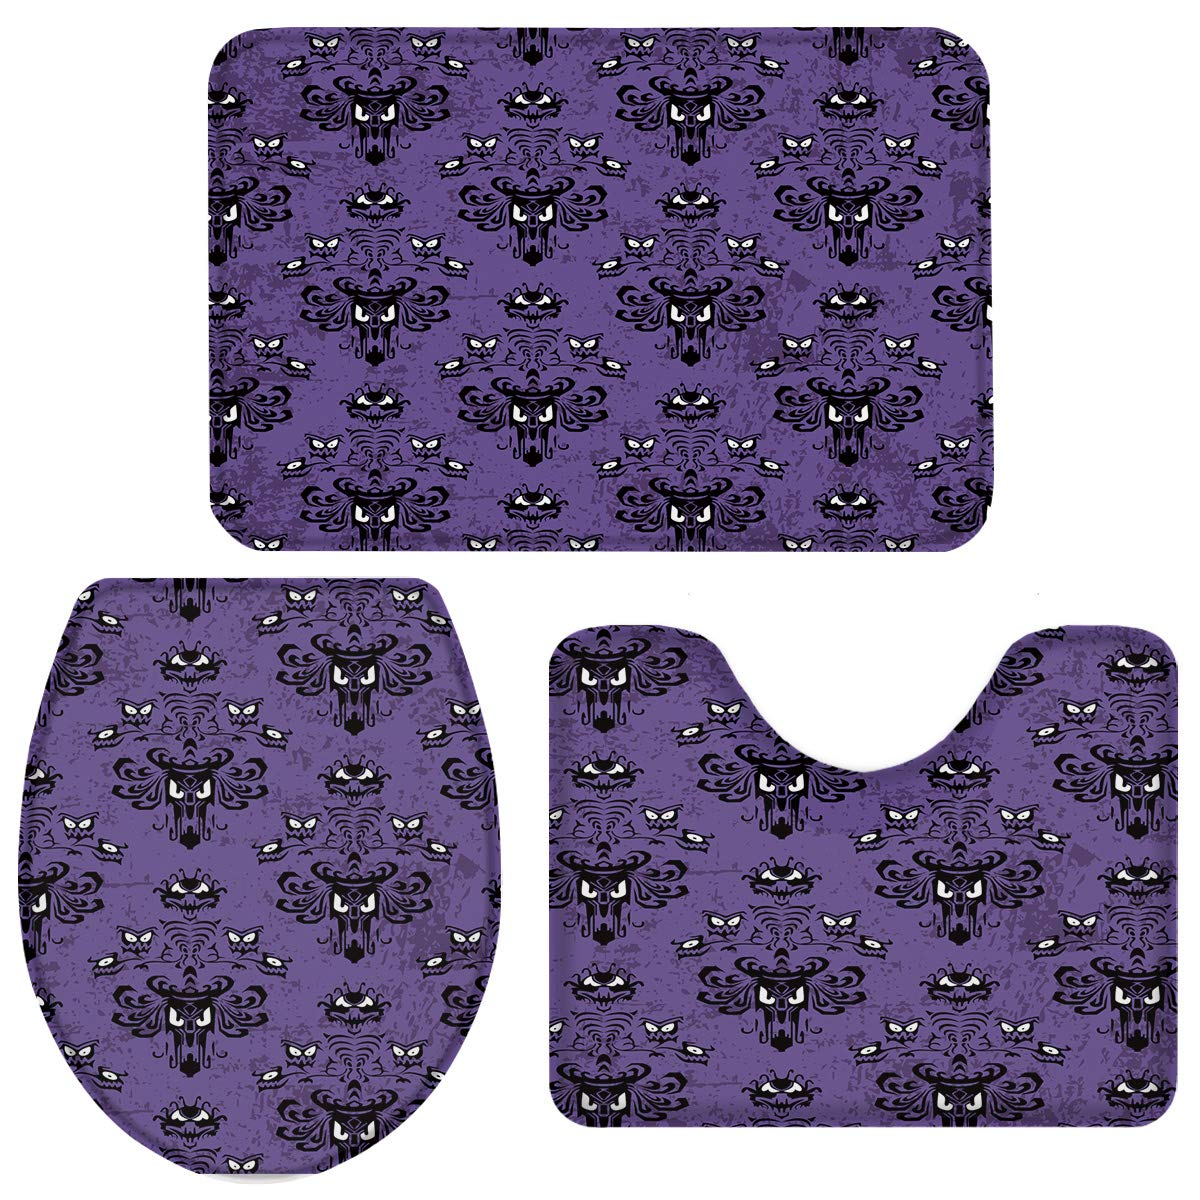 OneHoney 3-Piece Bath Rug and Mat Sets, Halloween Haunted Mansion Ghosts Non-Slip Bathroom Doormat Runner Rugs, Toilet Seat Cover, U-Shaped Toilet Floor Mat